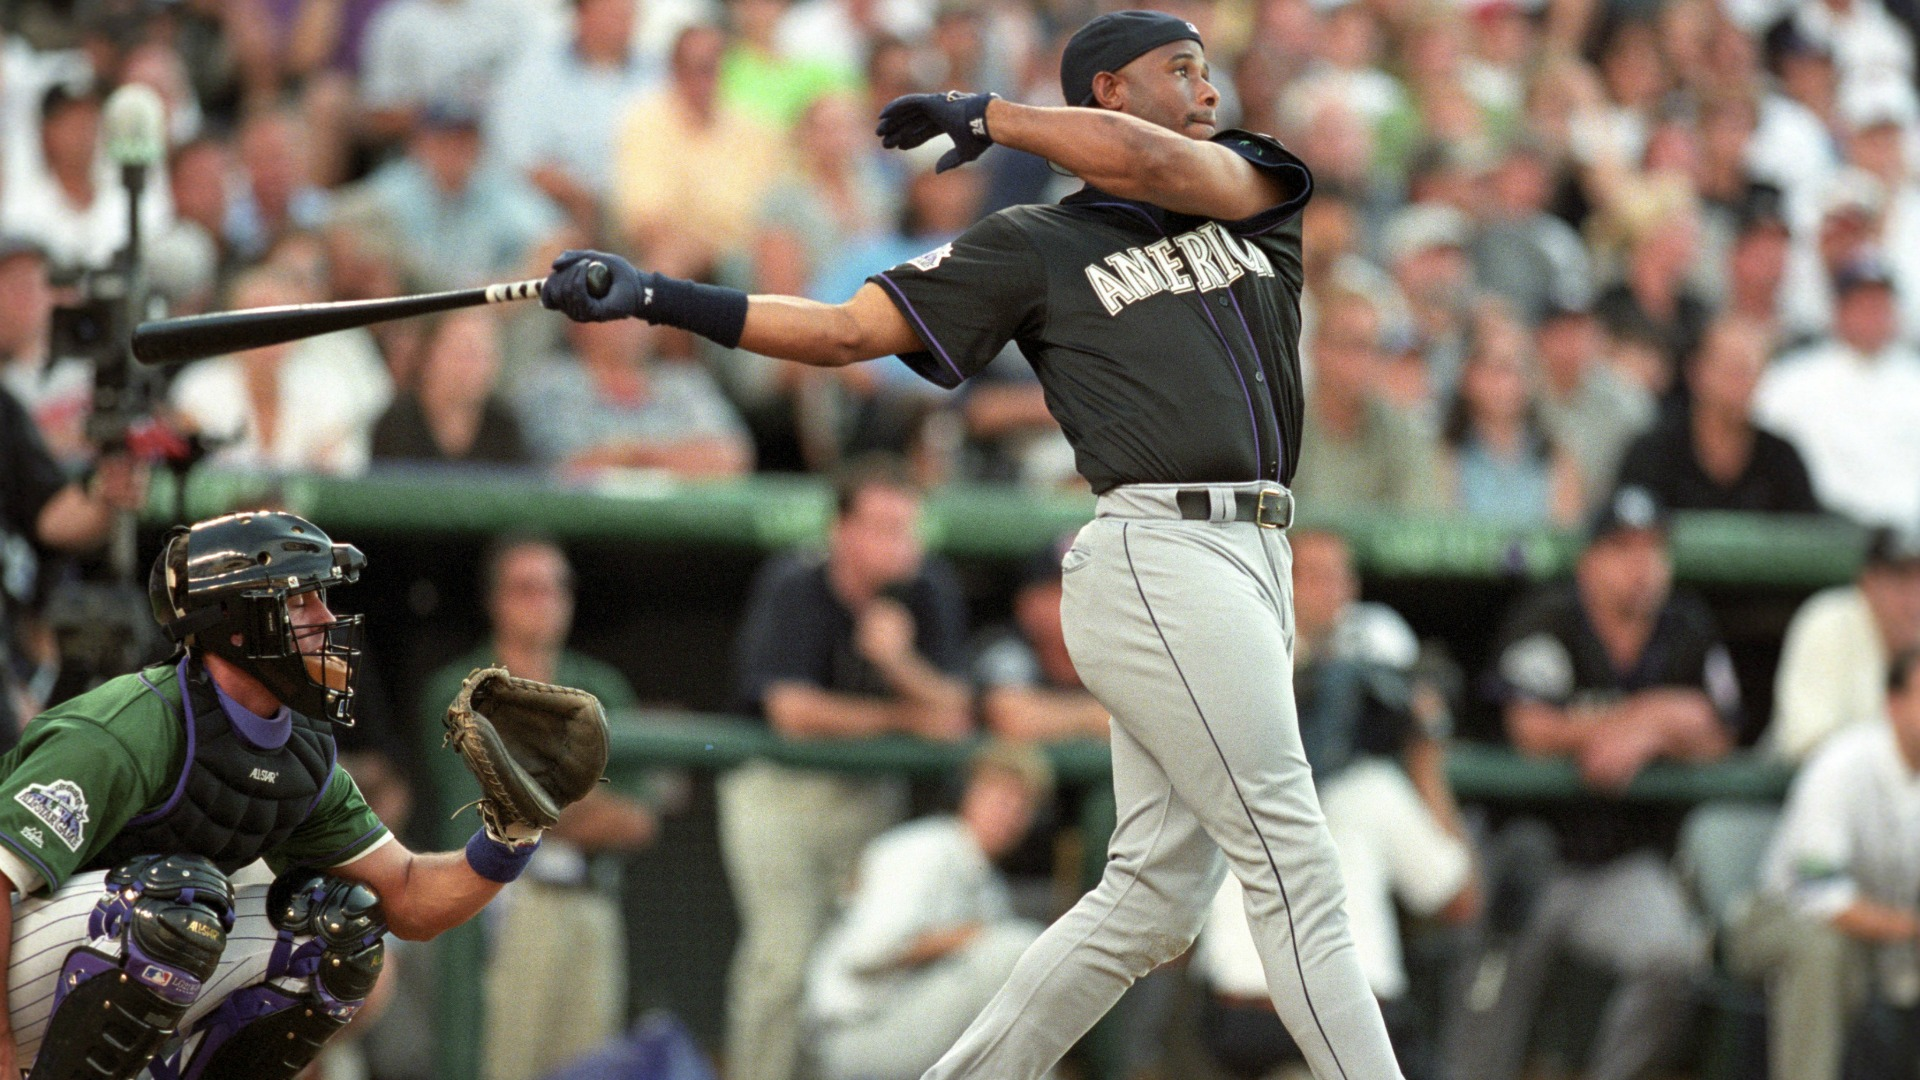 Ken Griffey Jr. explains why he wore his hat backwards